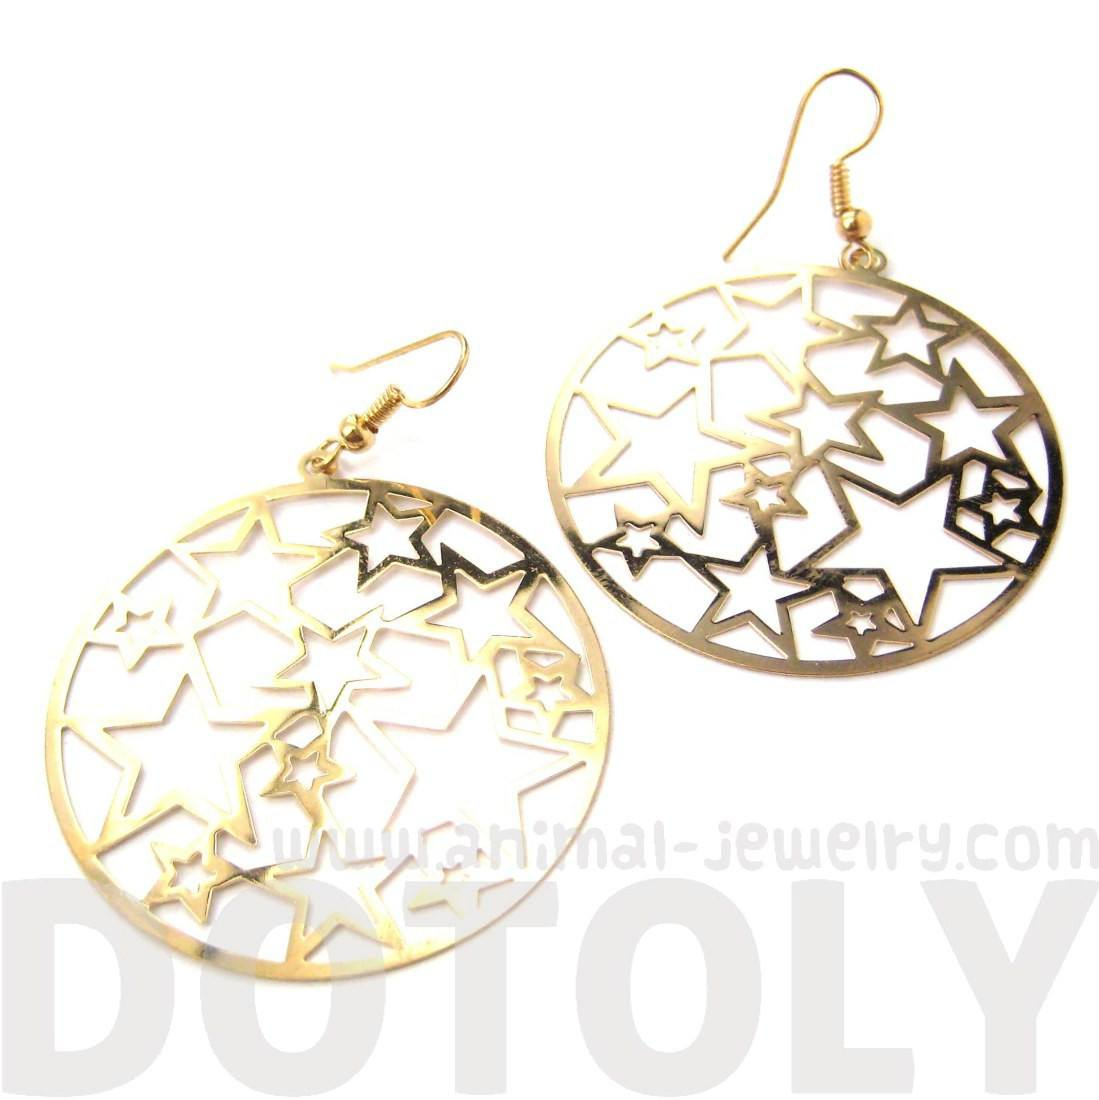 Star Outline Cut Out Round Disk Shaped Dangle Drop Earrings in Gold